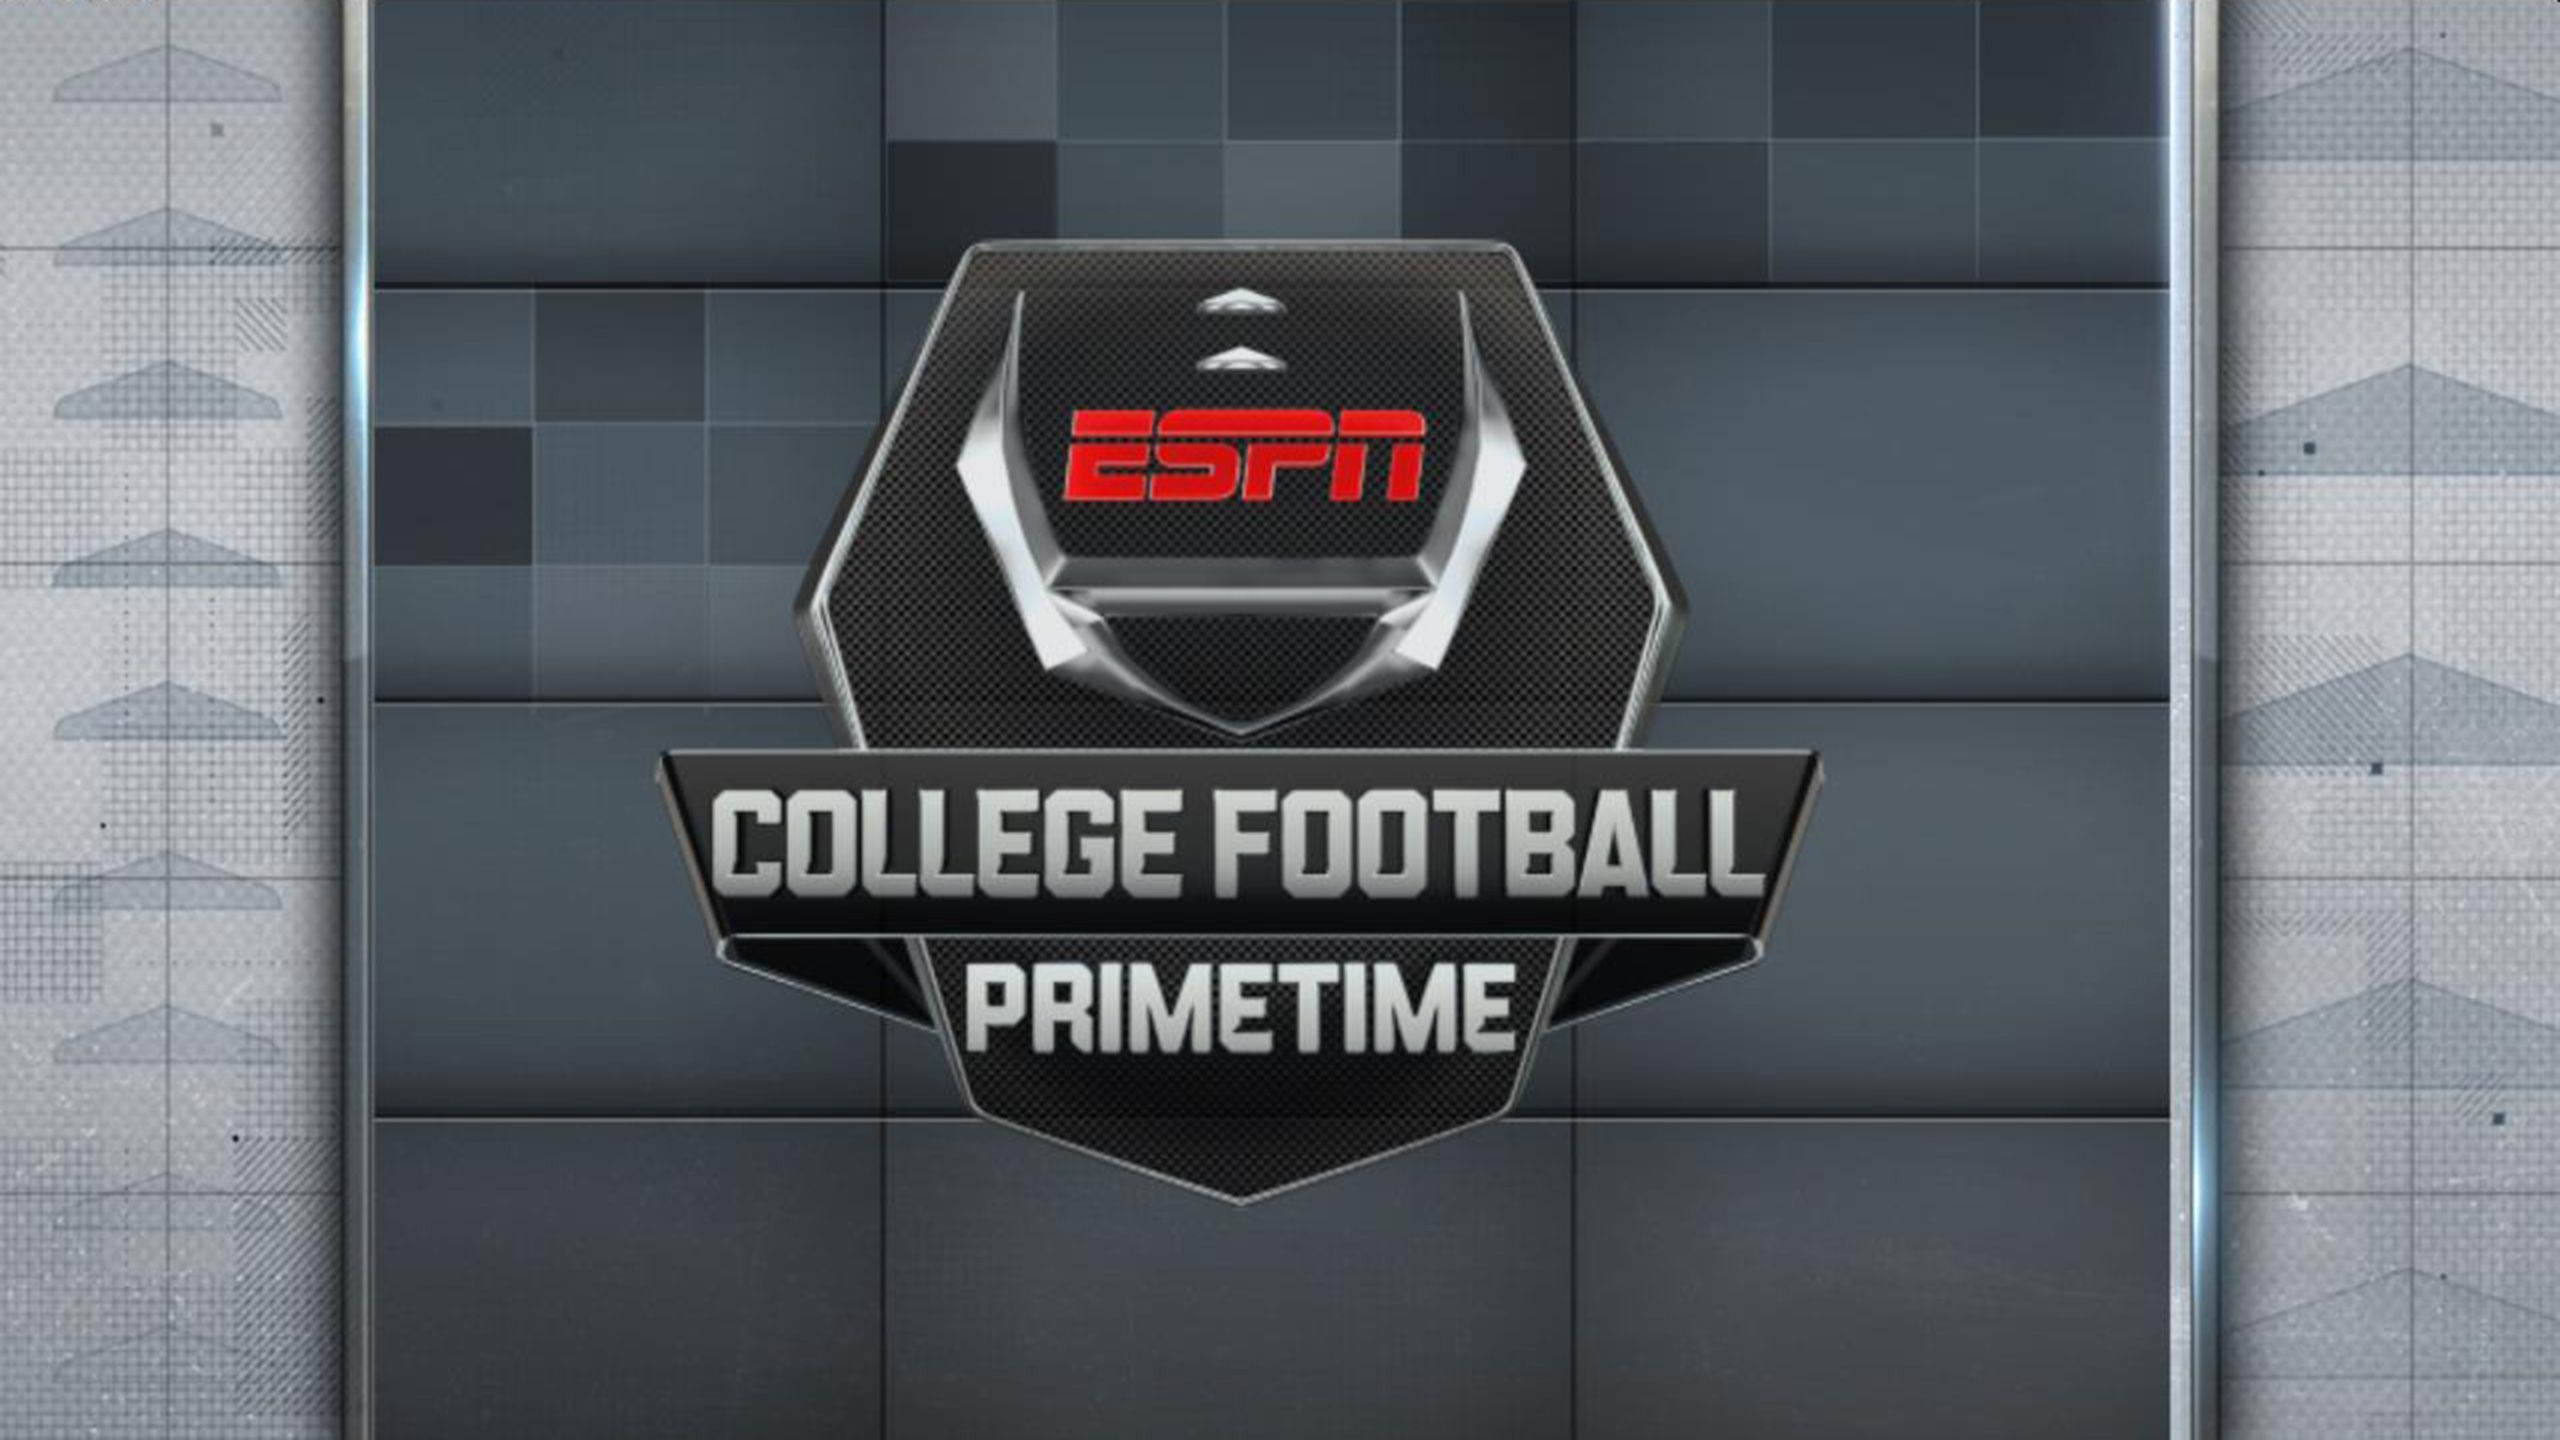 College Football Primetime at The NFL Draft presented by Courtyard